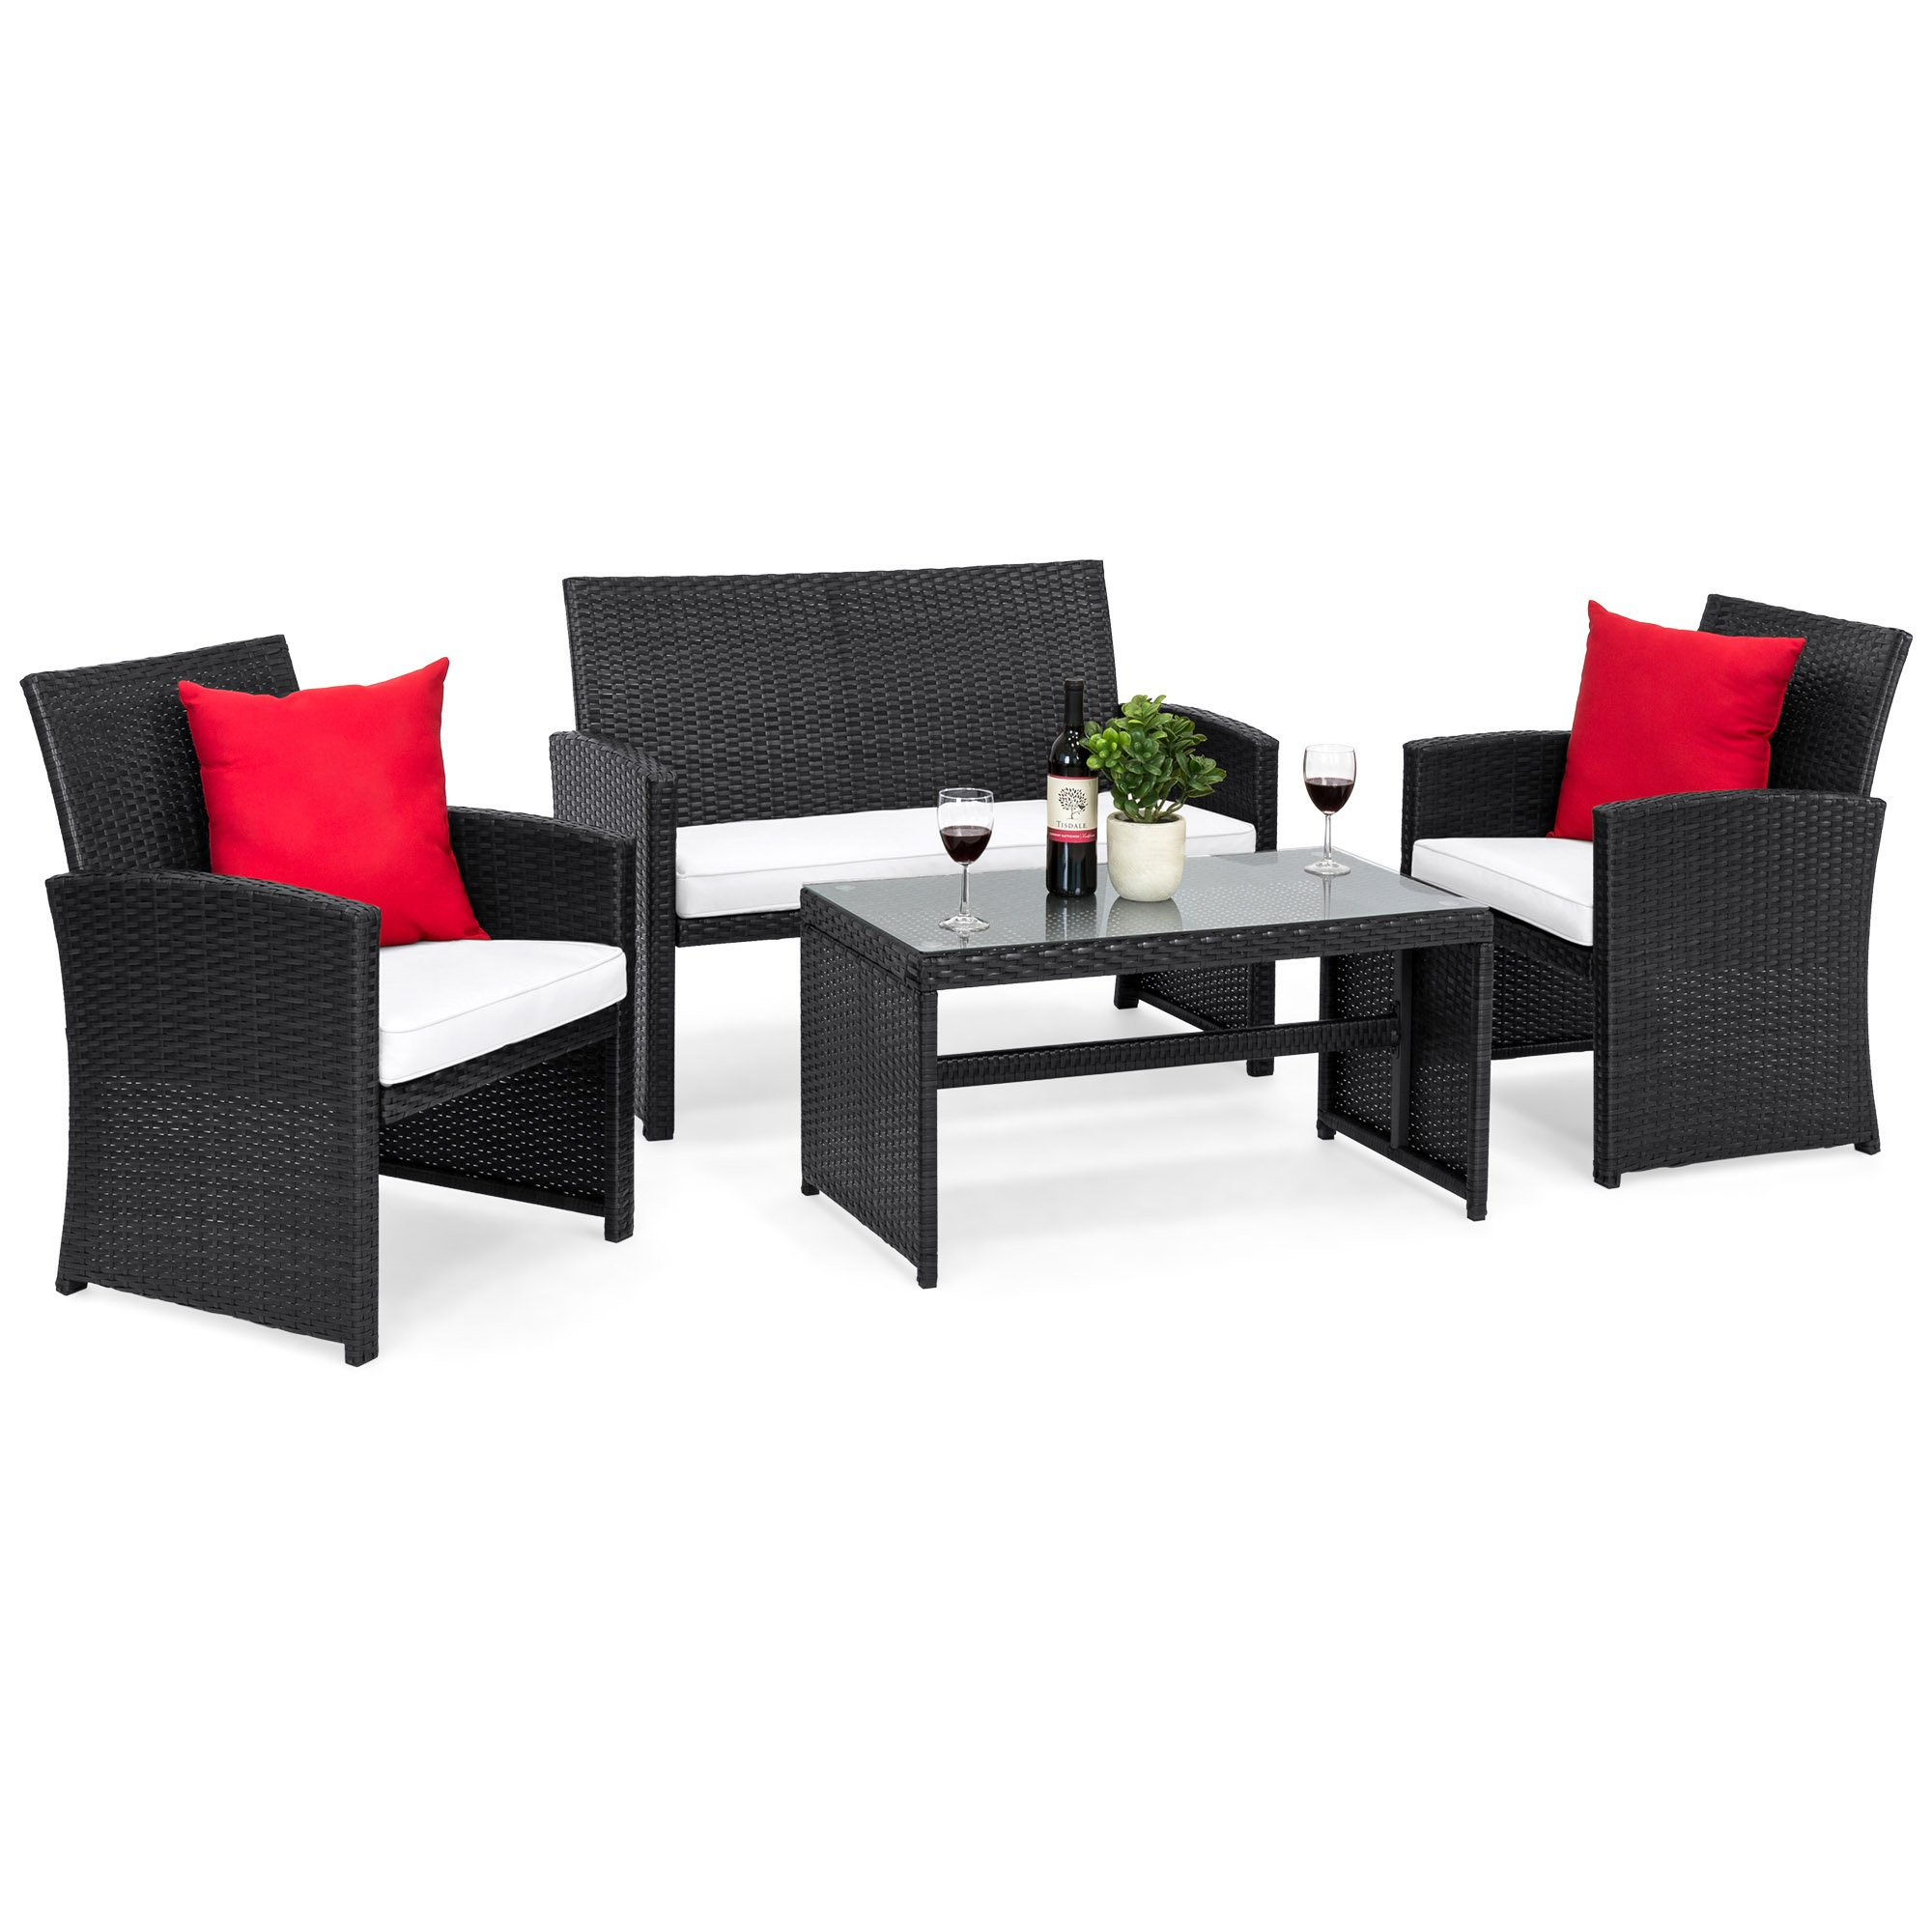 Best Choice Products 4-Piece Wicker Patio Furniture Set w/Tempered Glass, 3 Sofas, Table, Cushioned Seats - Black